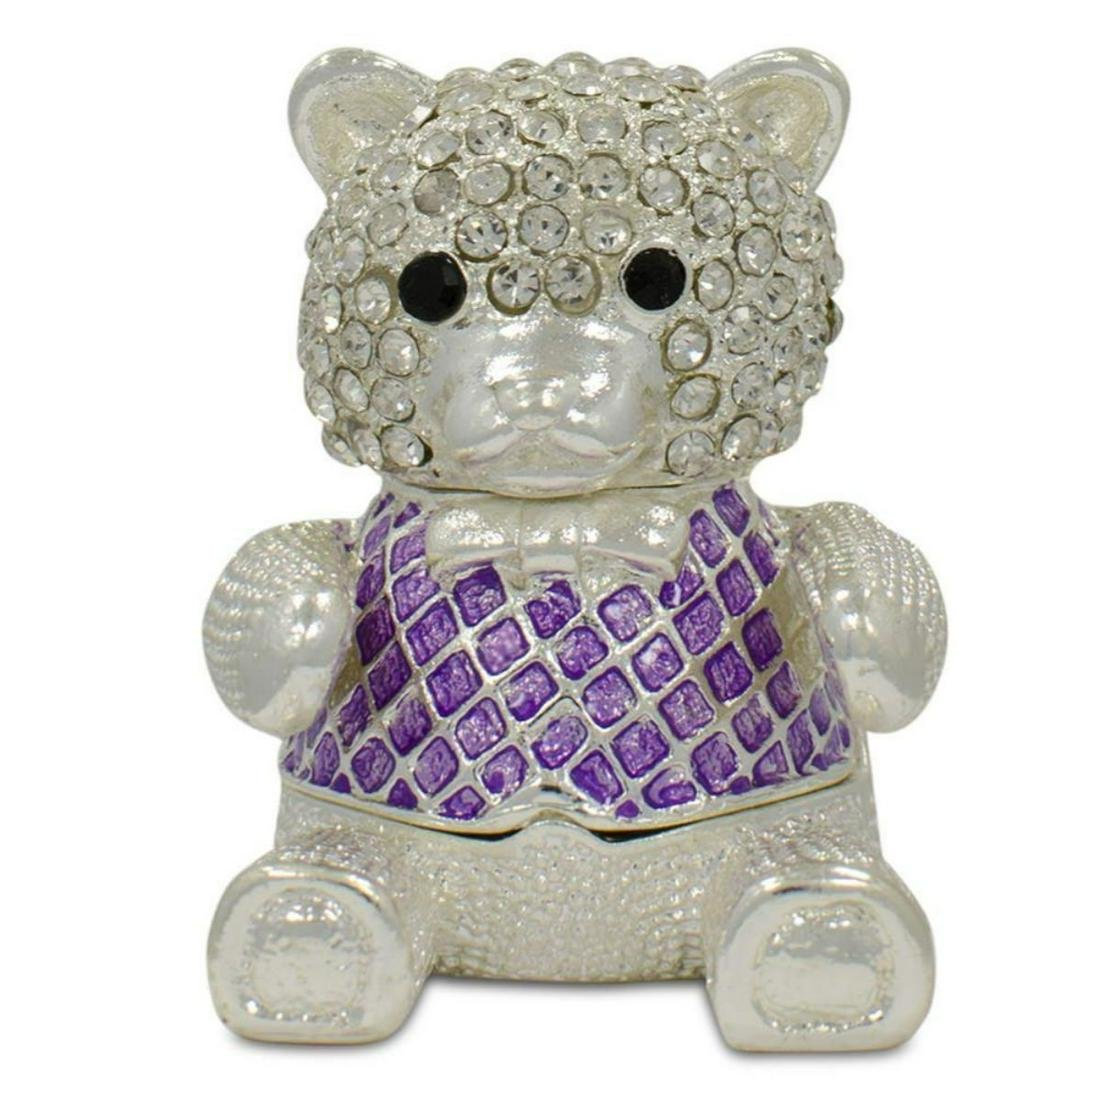 Crystal Teddy Bear Trinket Box Figurine 2 Inches